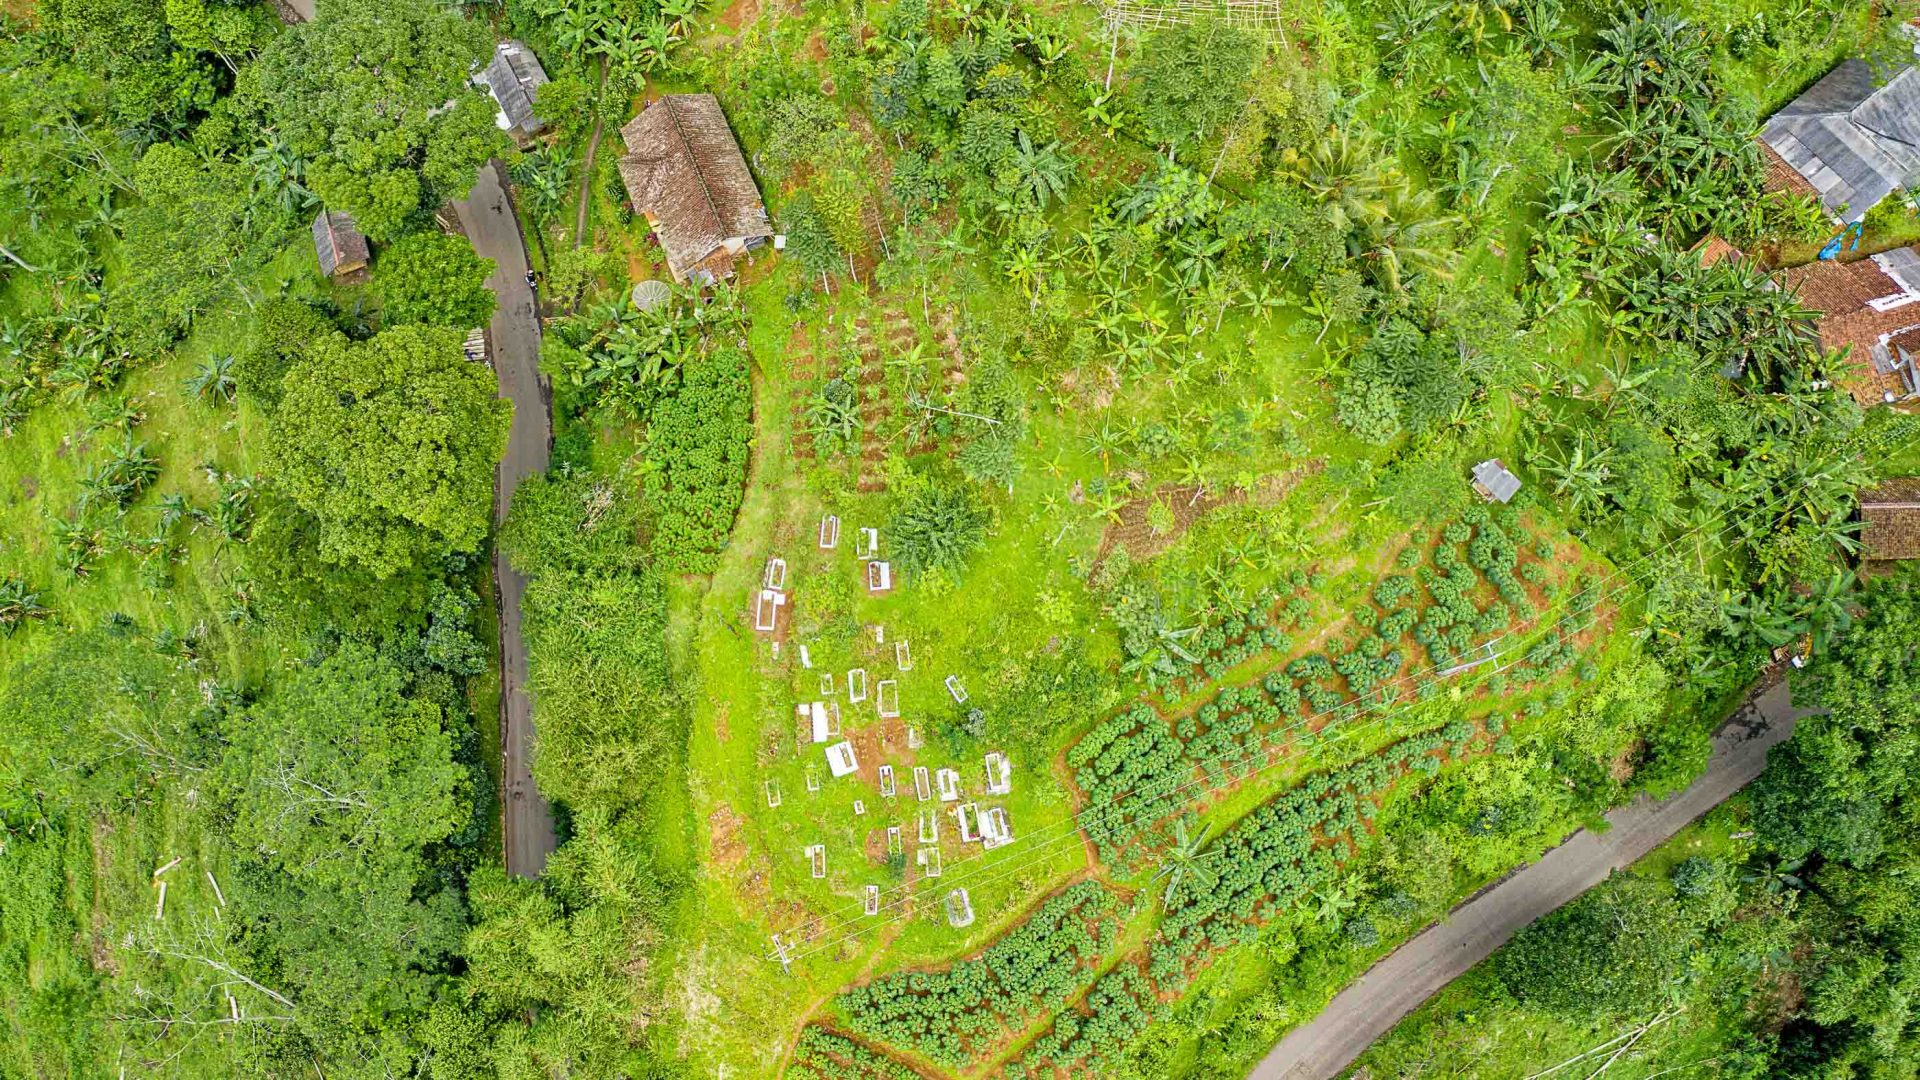 An aerial view over a permaculture garden.